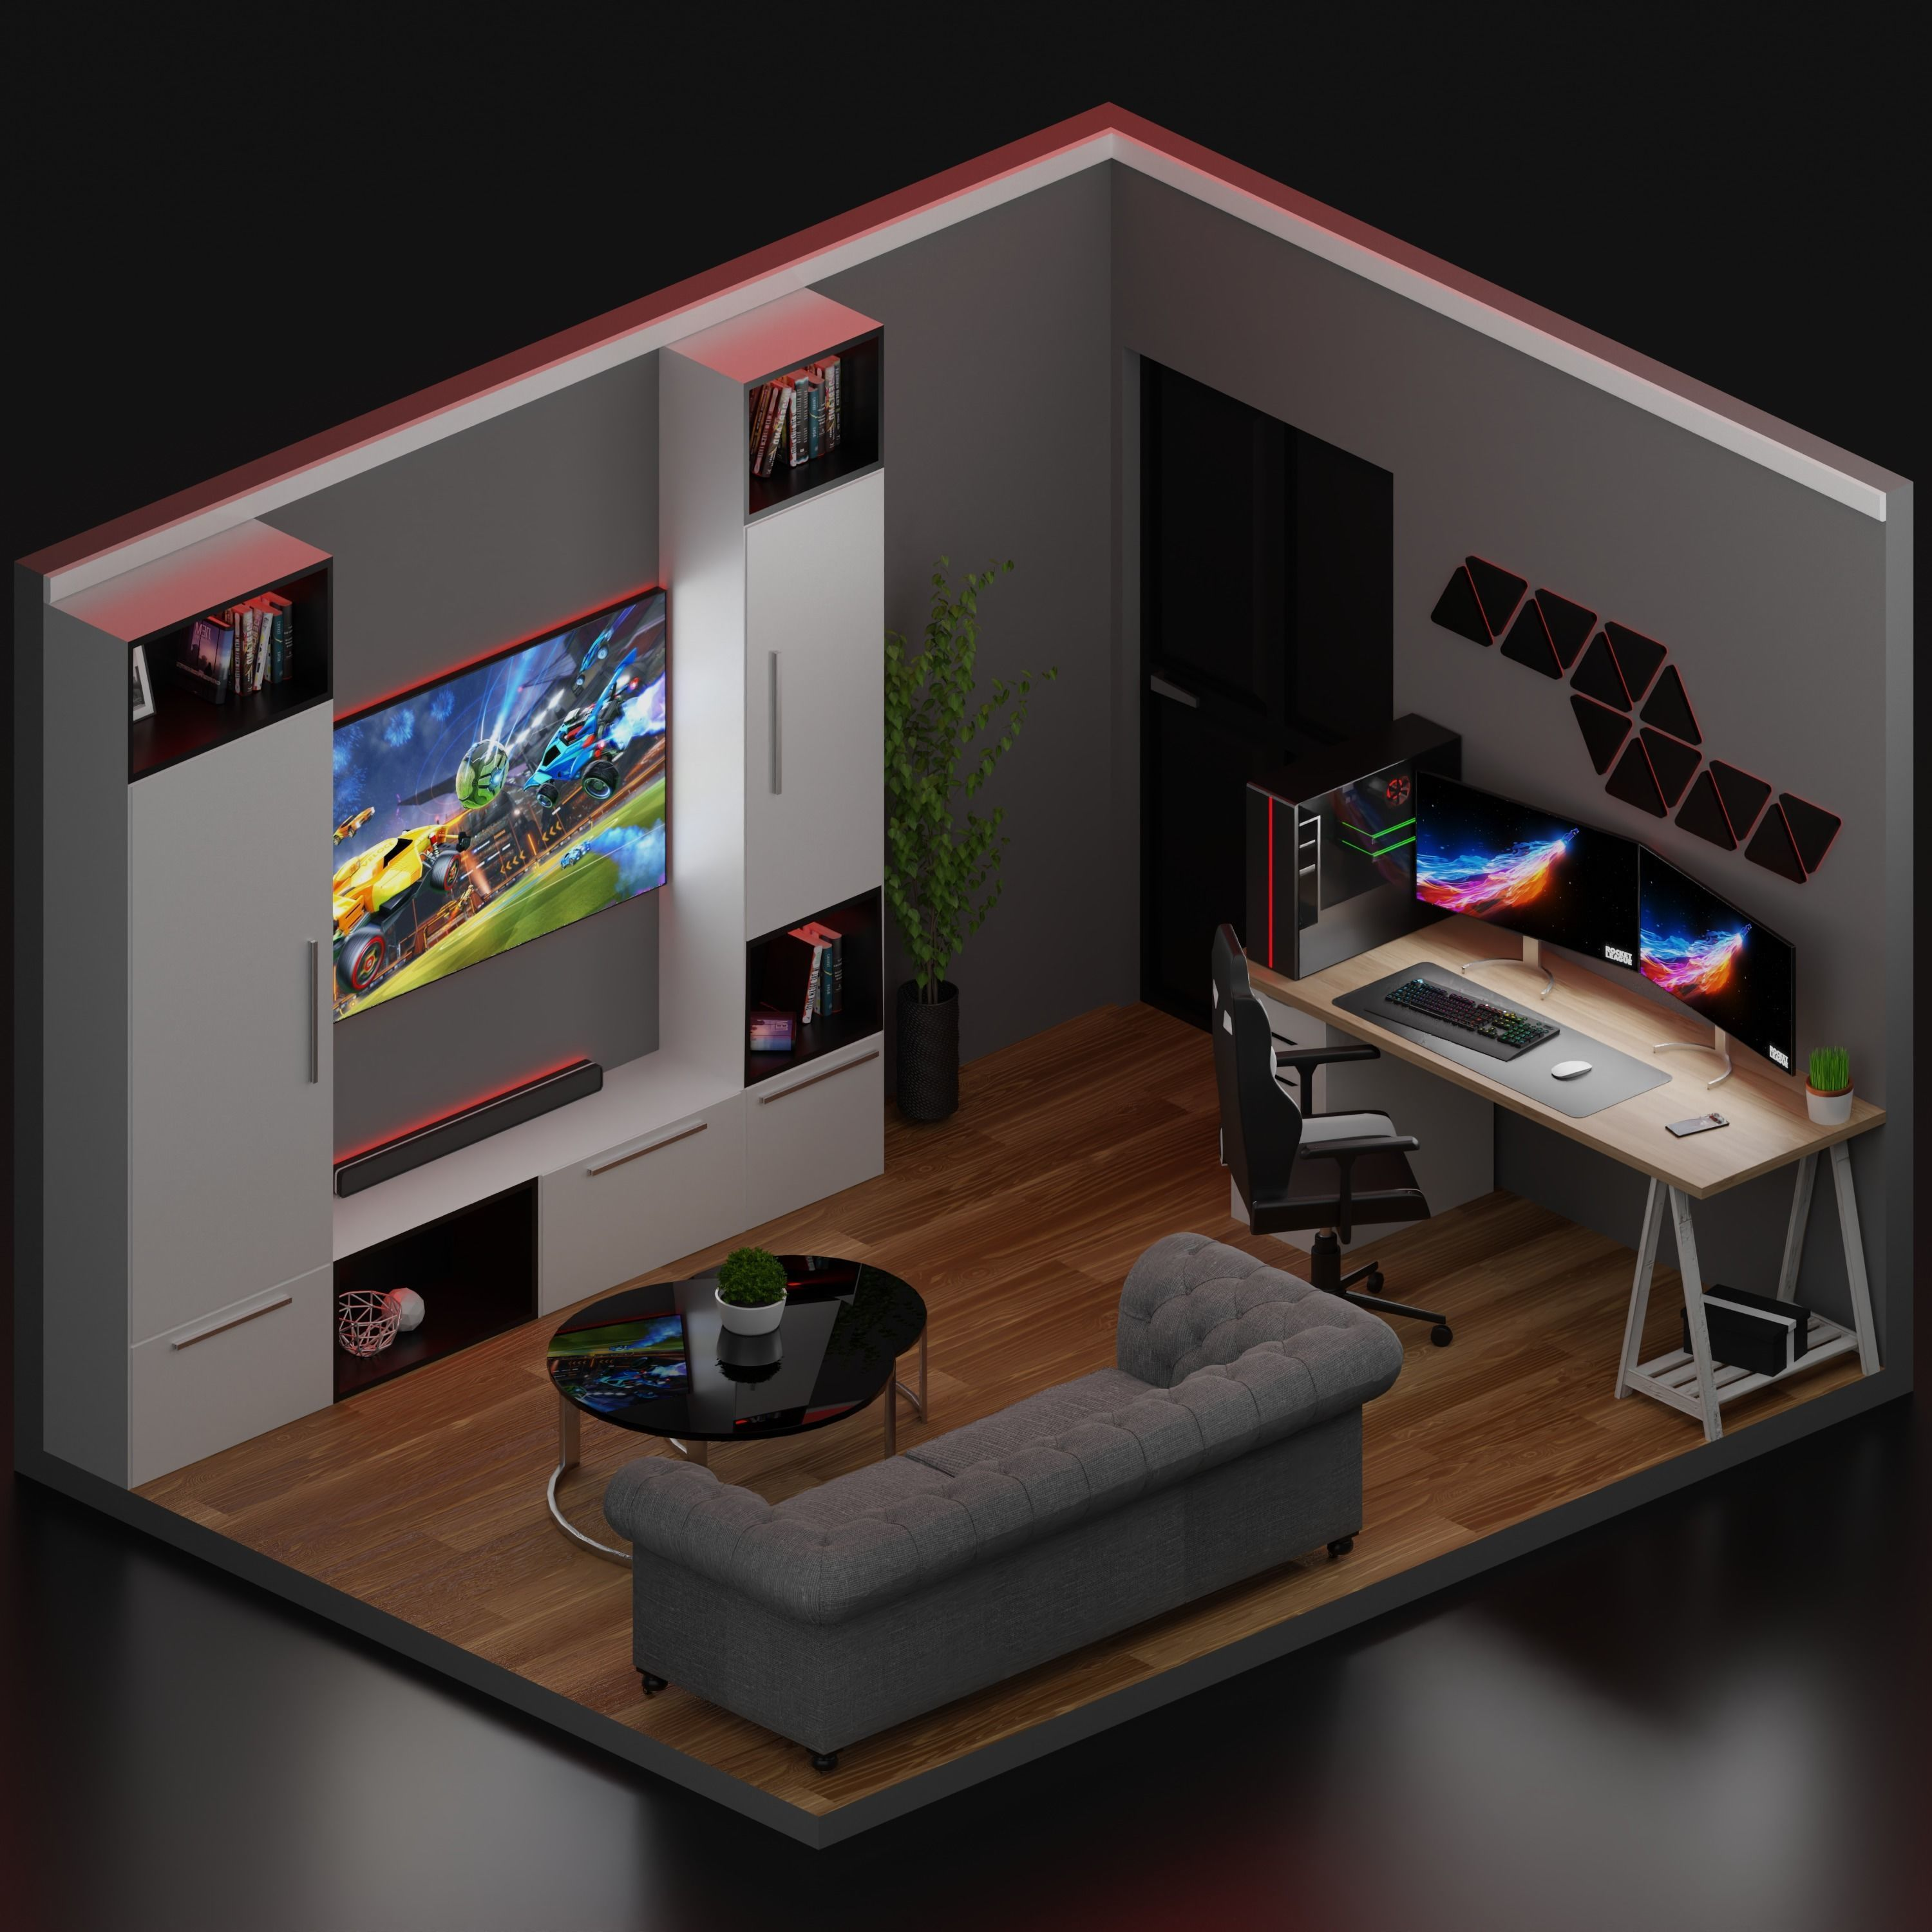 Realistick Low Poly Gaming Room Design 3d Asset Cgtrader